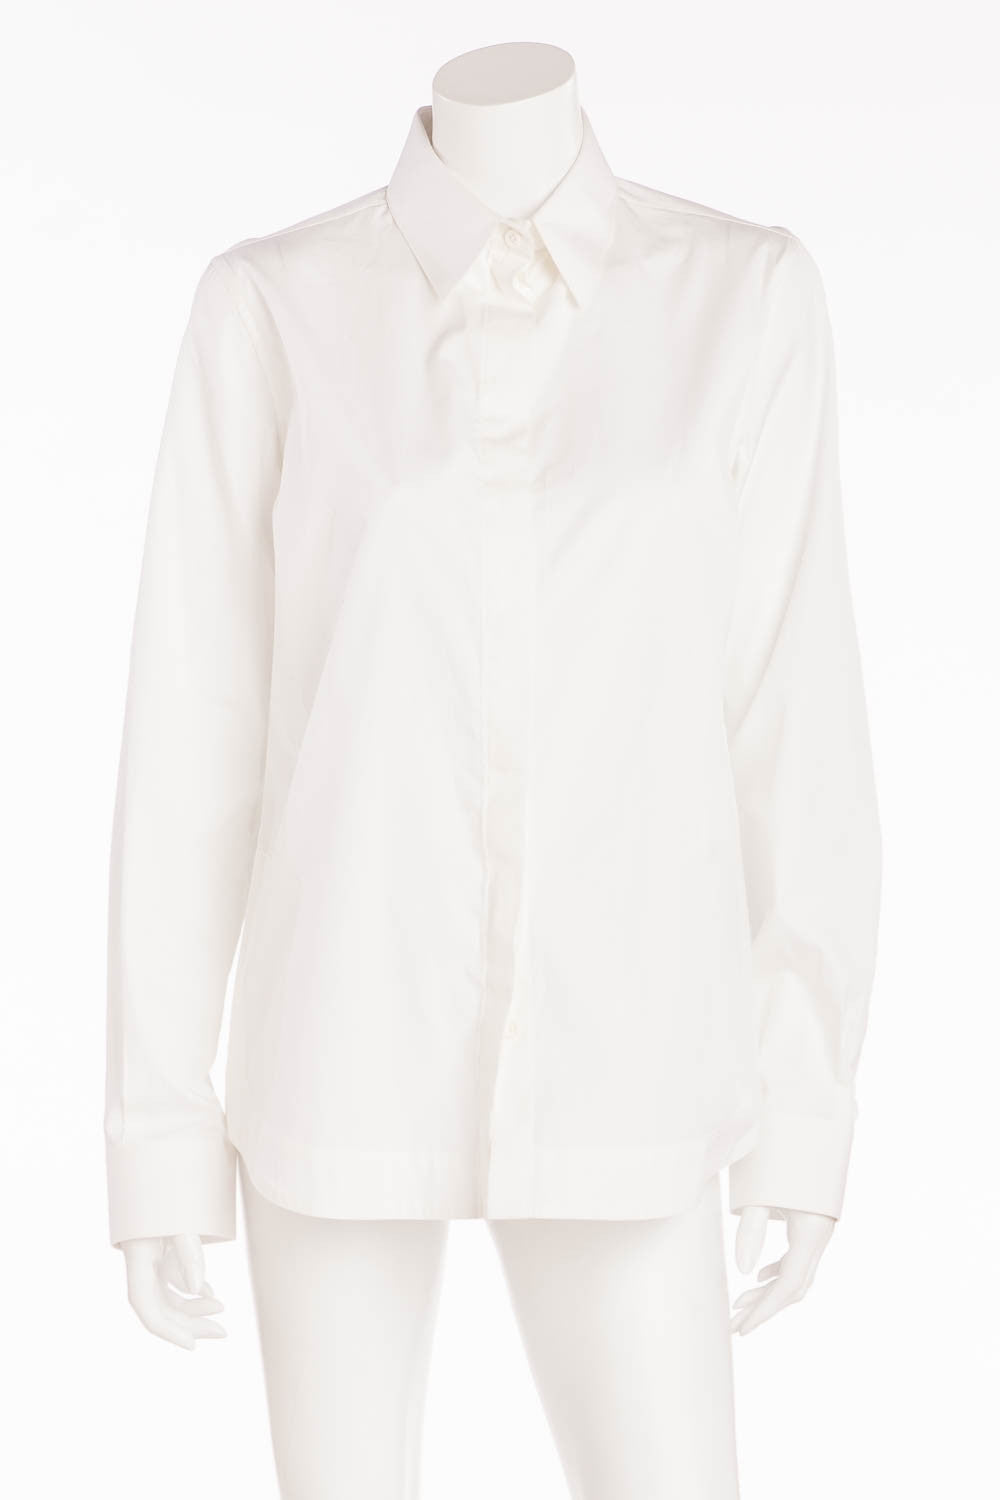 Givenchy - White Long Sleeve Button Down NWT - FR 40